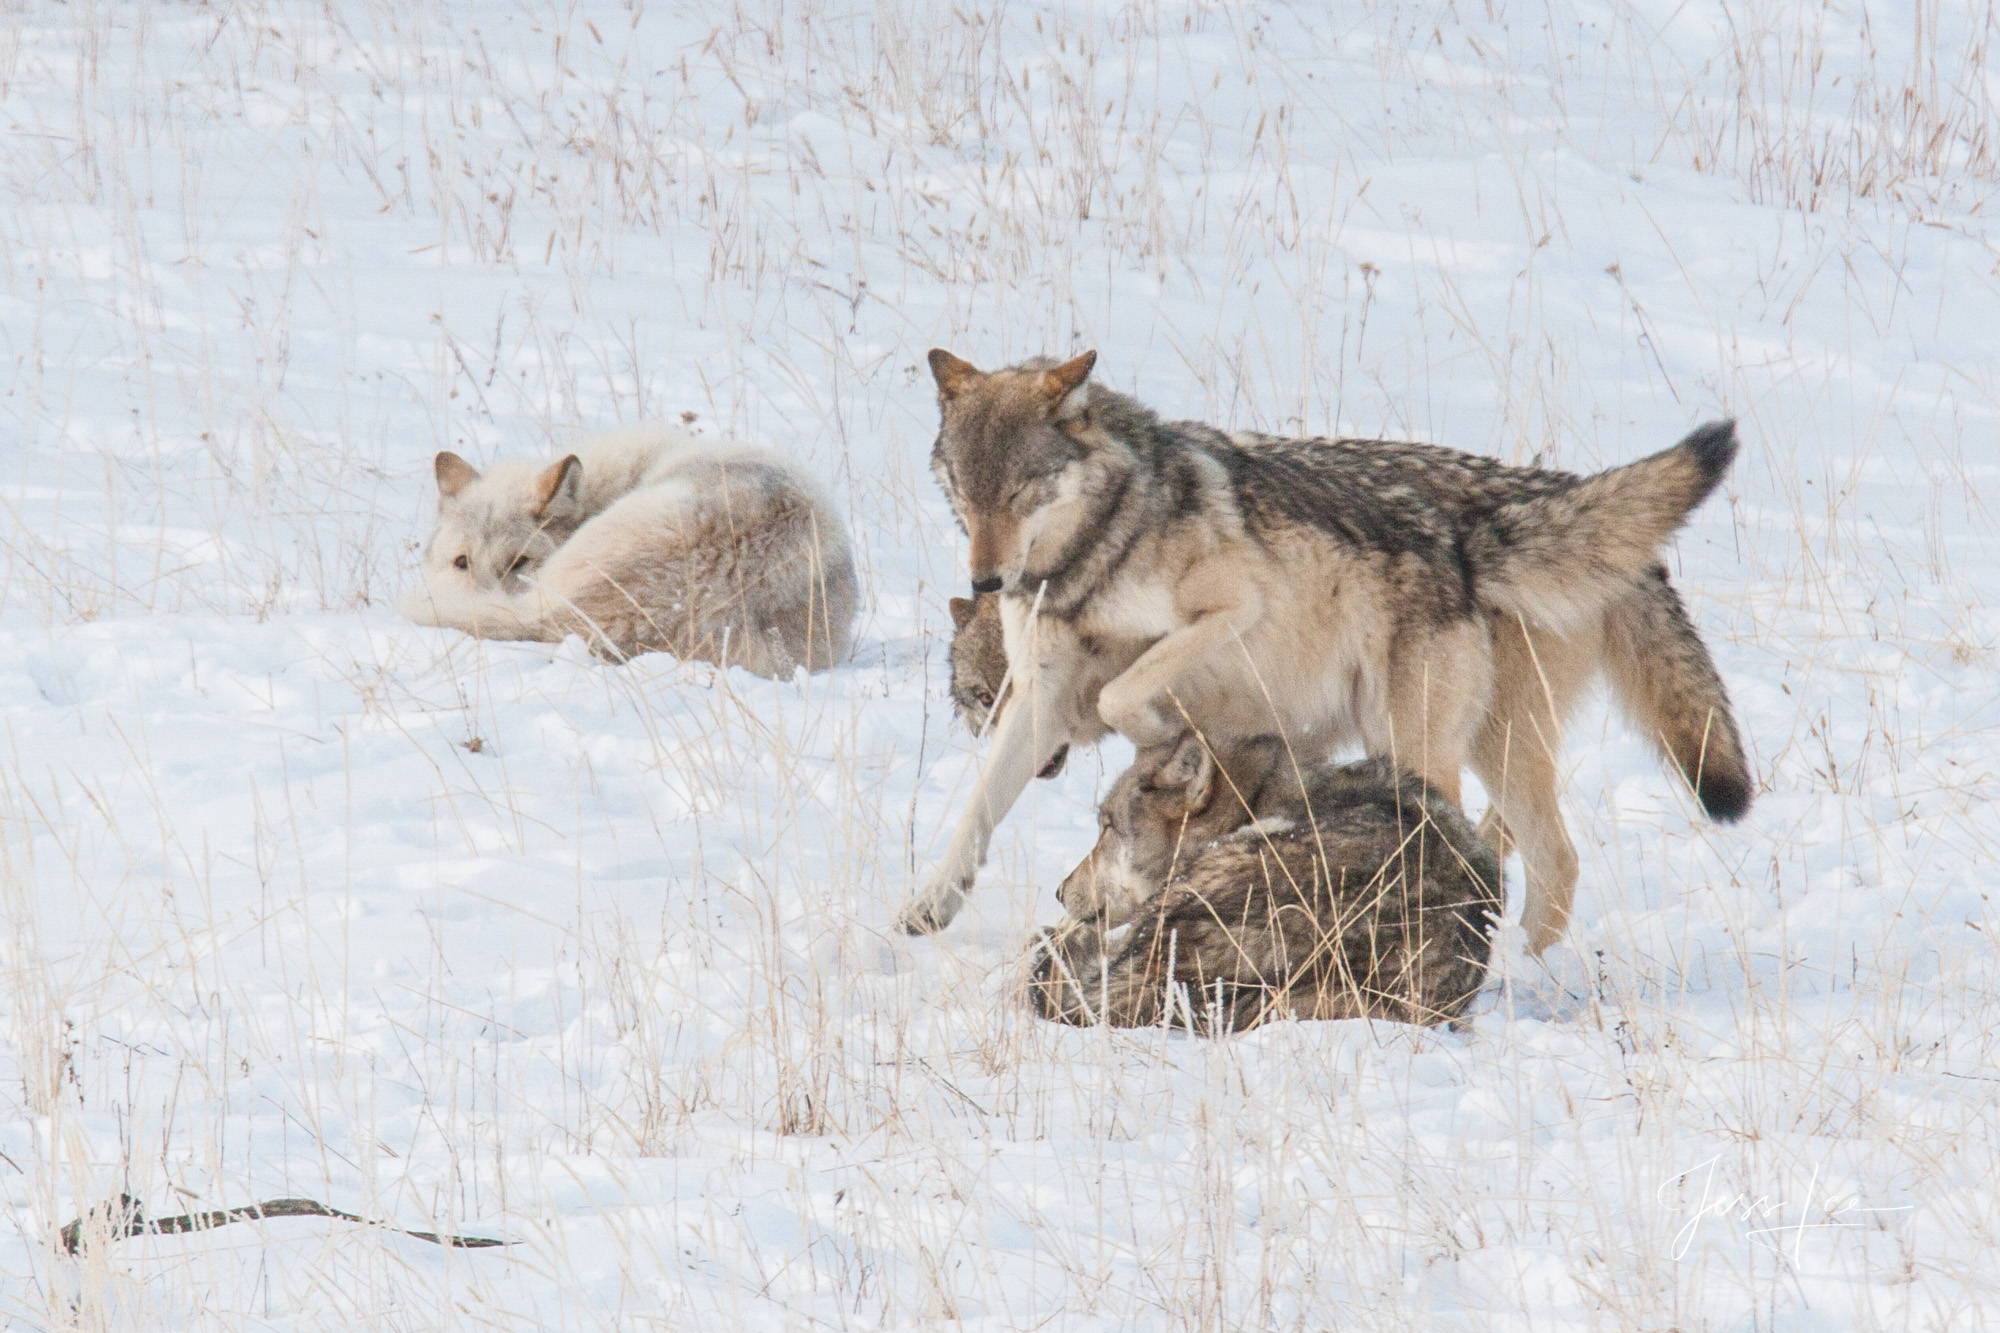 sub adult wolves playing with parents